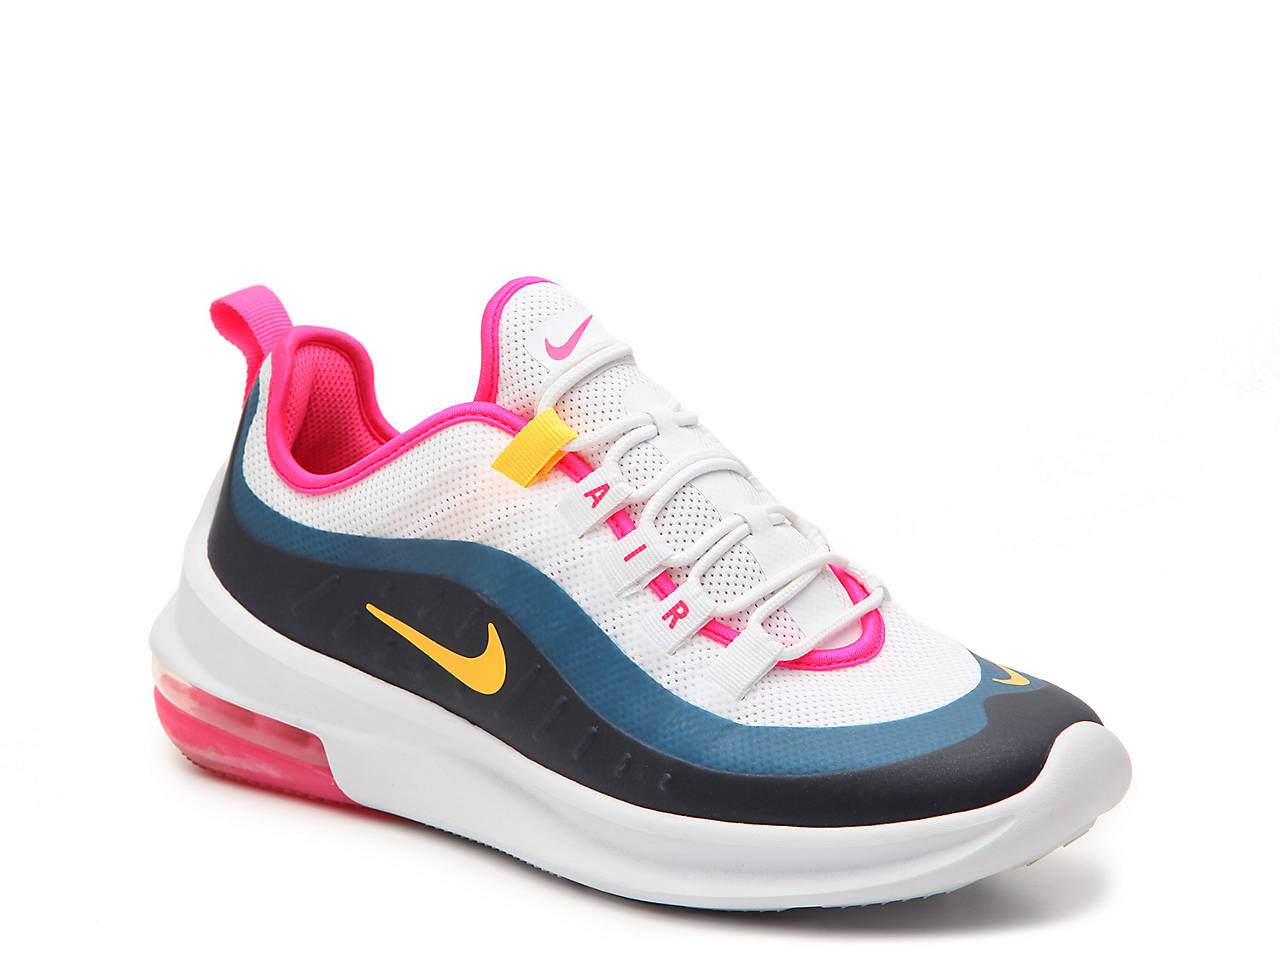 3ef0382521 Nike Air Max Axis Sneaker - Women's Women's Shoes | DSW